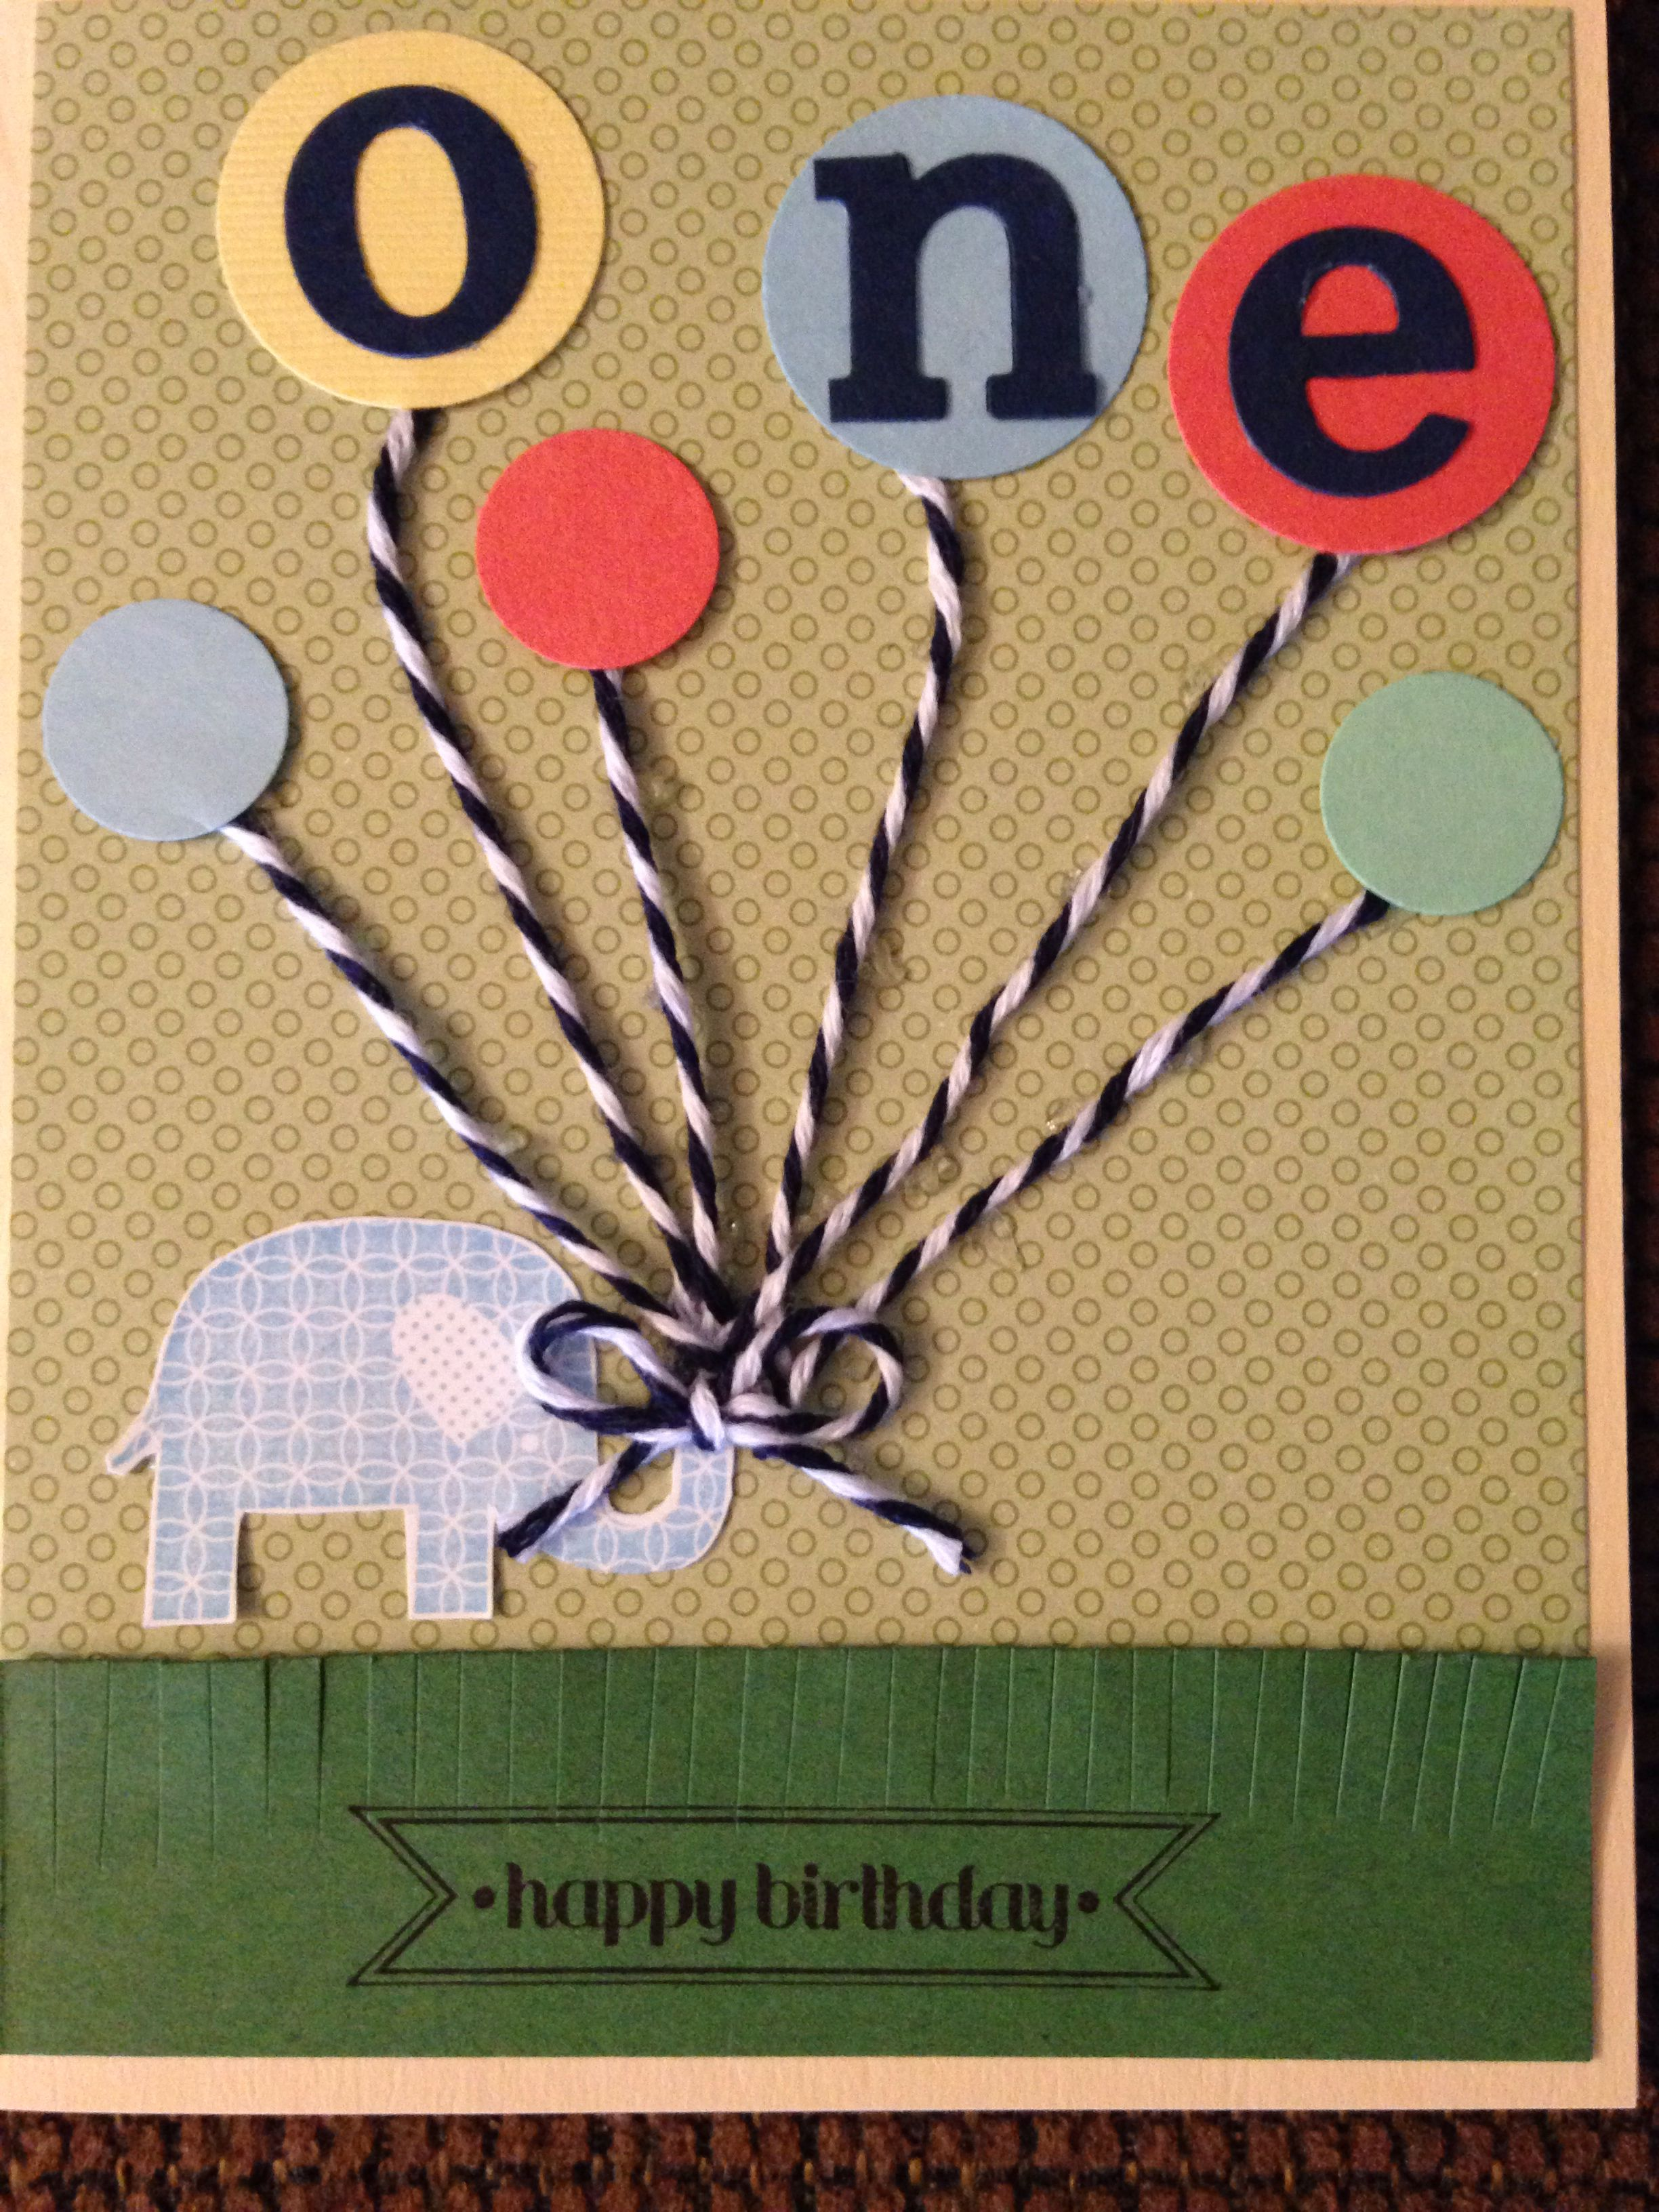 one year old birthday card wishes ; 0fe1e407e59749ce2f1cb2a1b4753c94